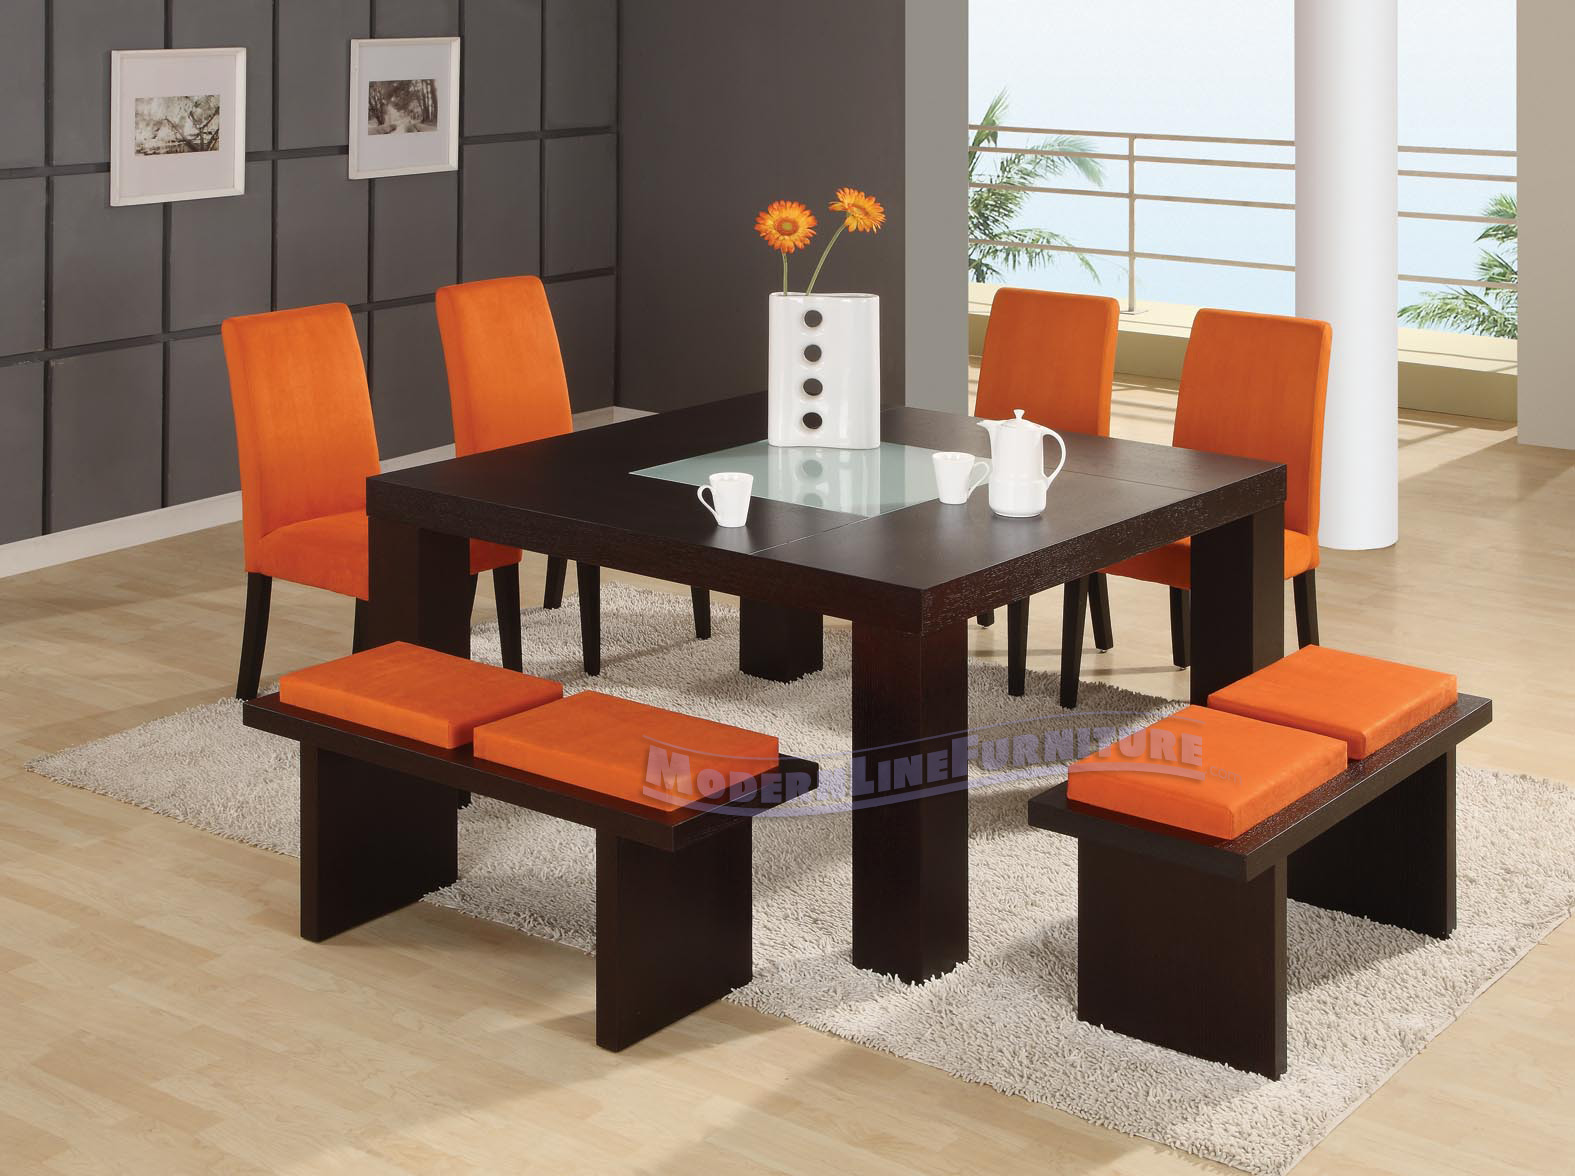 Contemporary square dining room table for 8. mesa de jantar ...